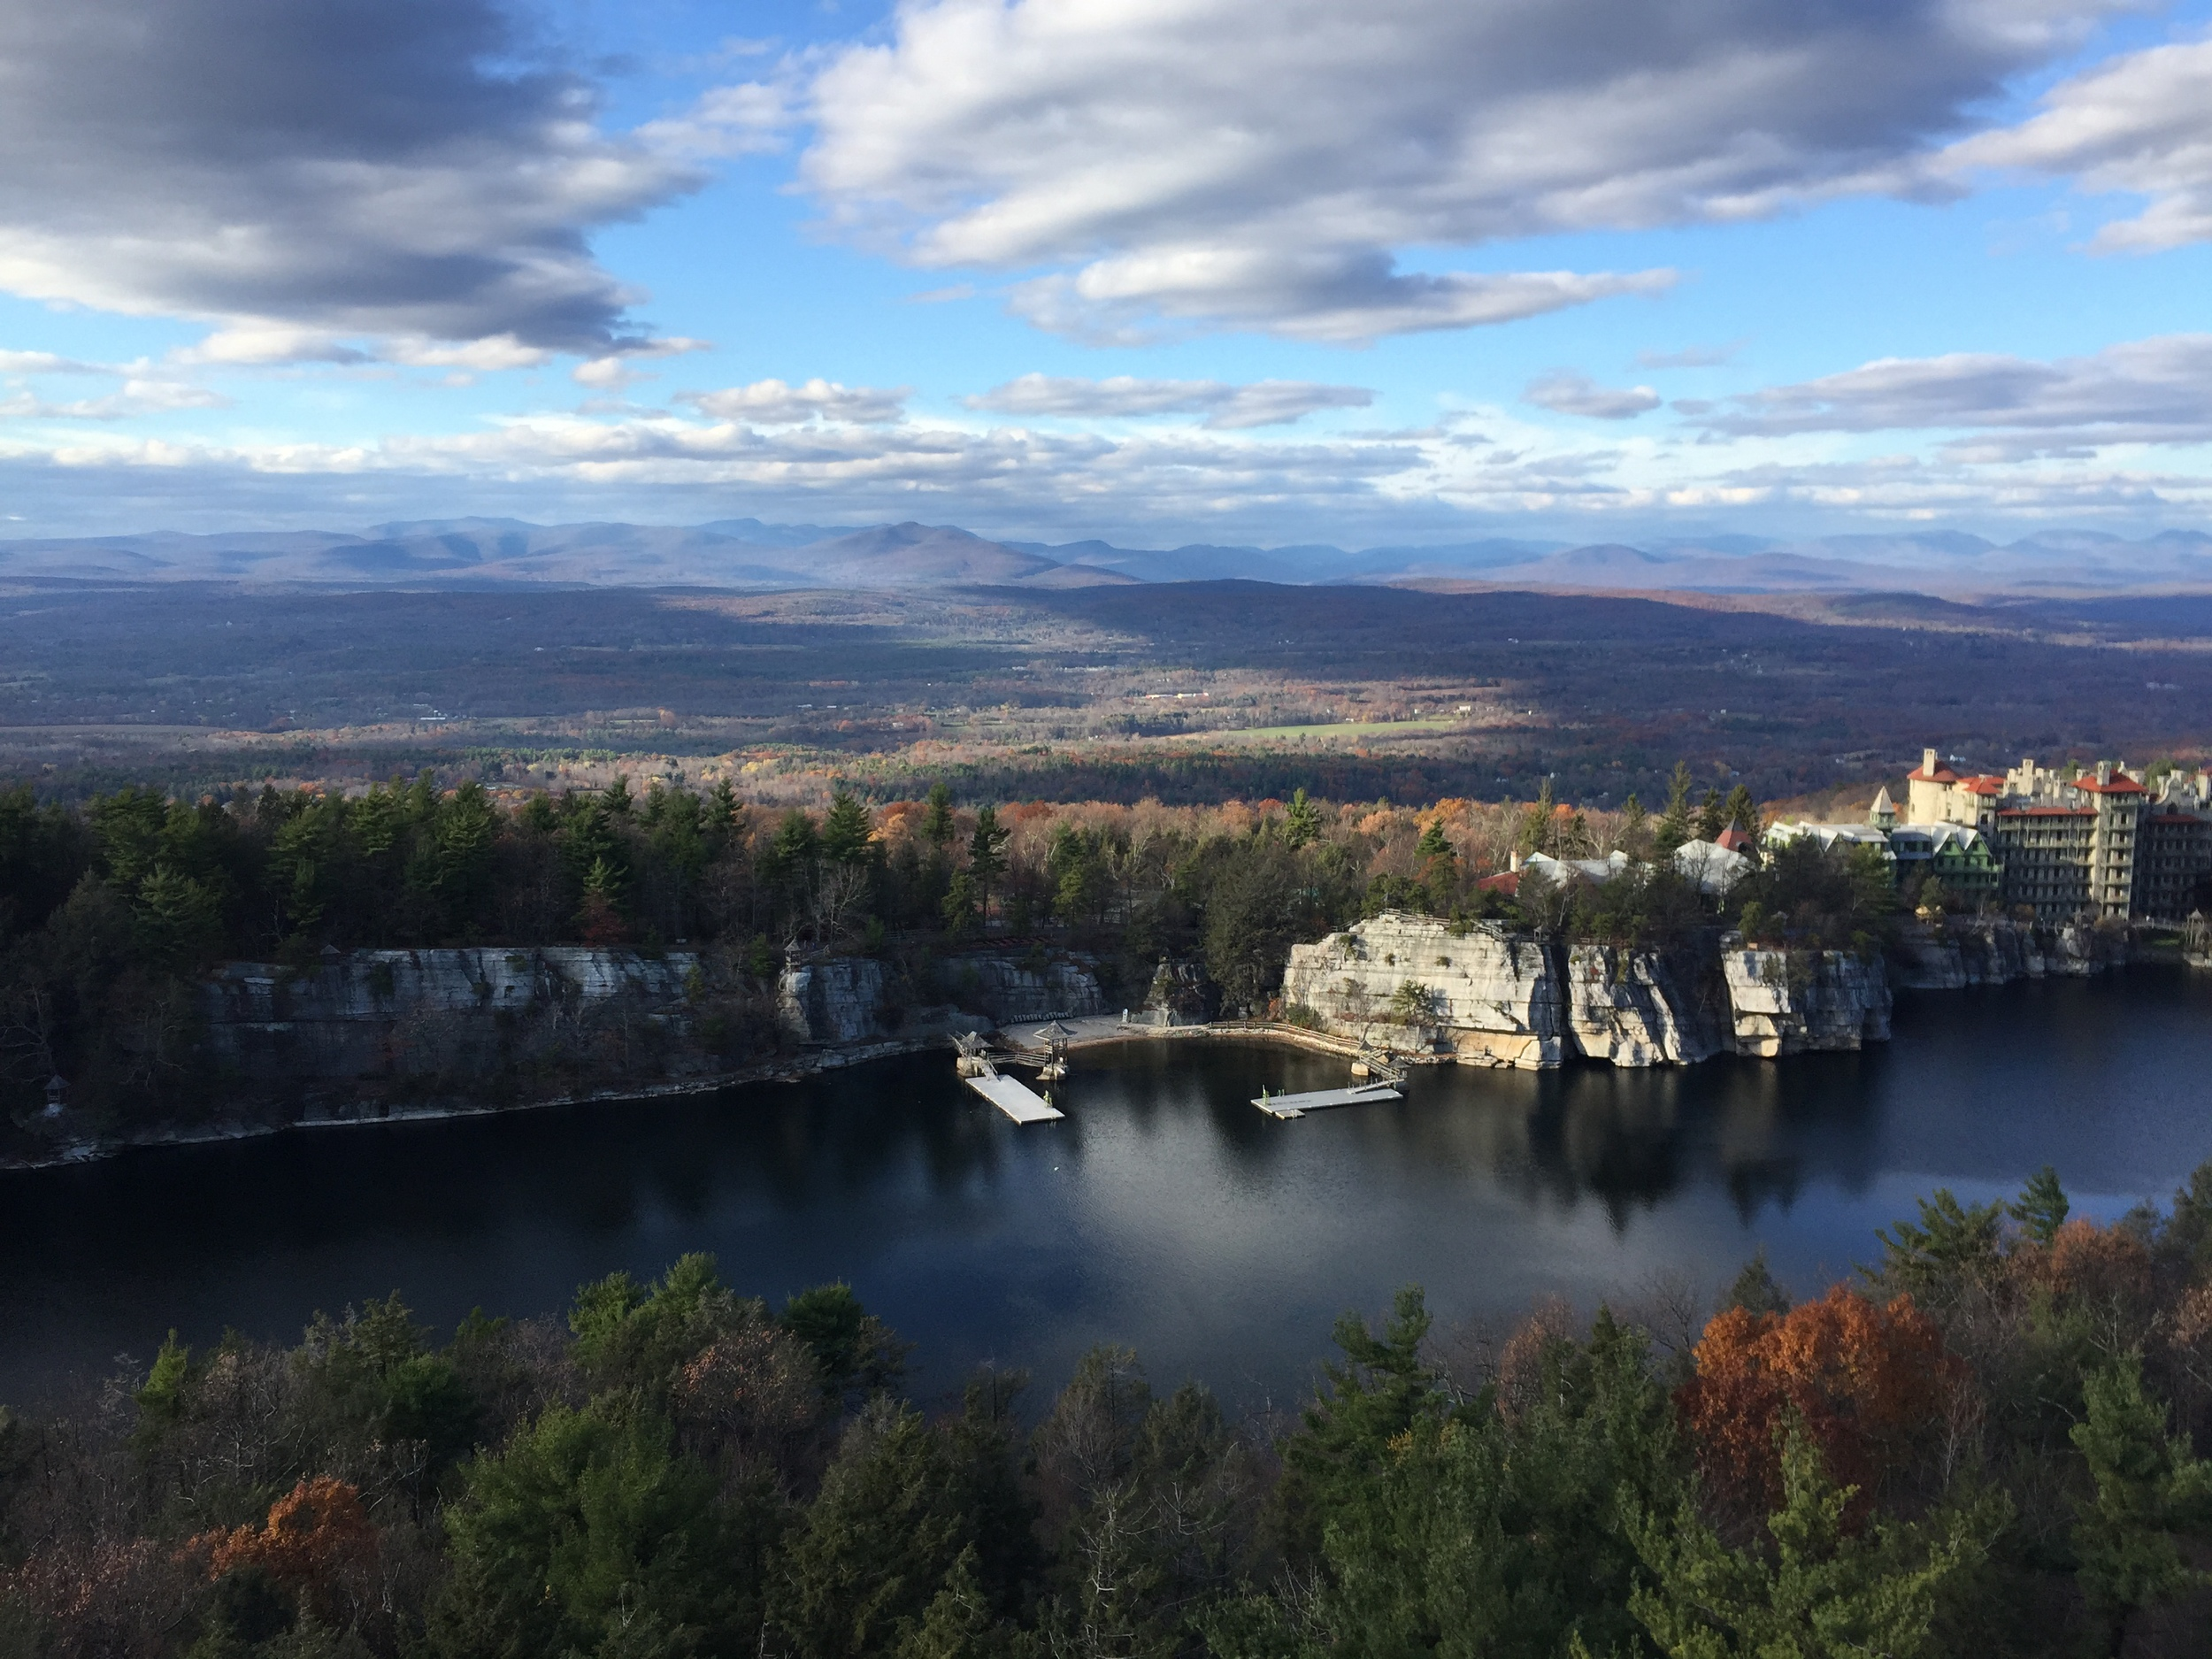 Catskills View from Mohonk / Shawangunk Ridge